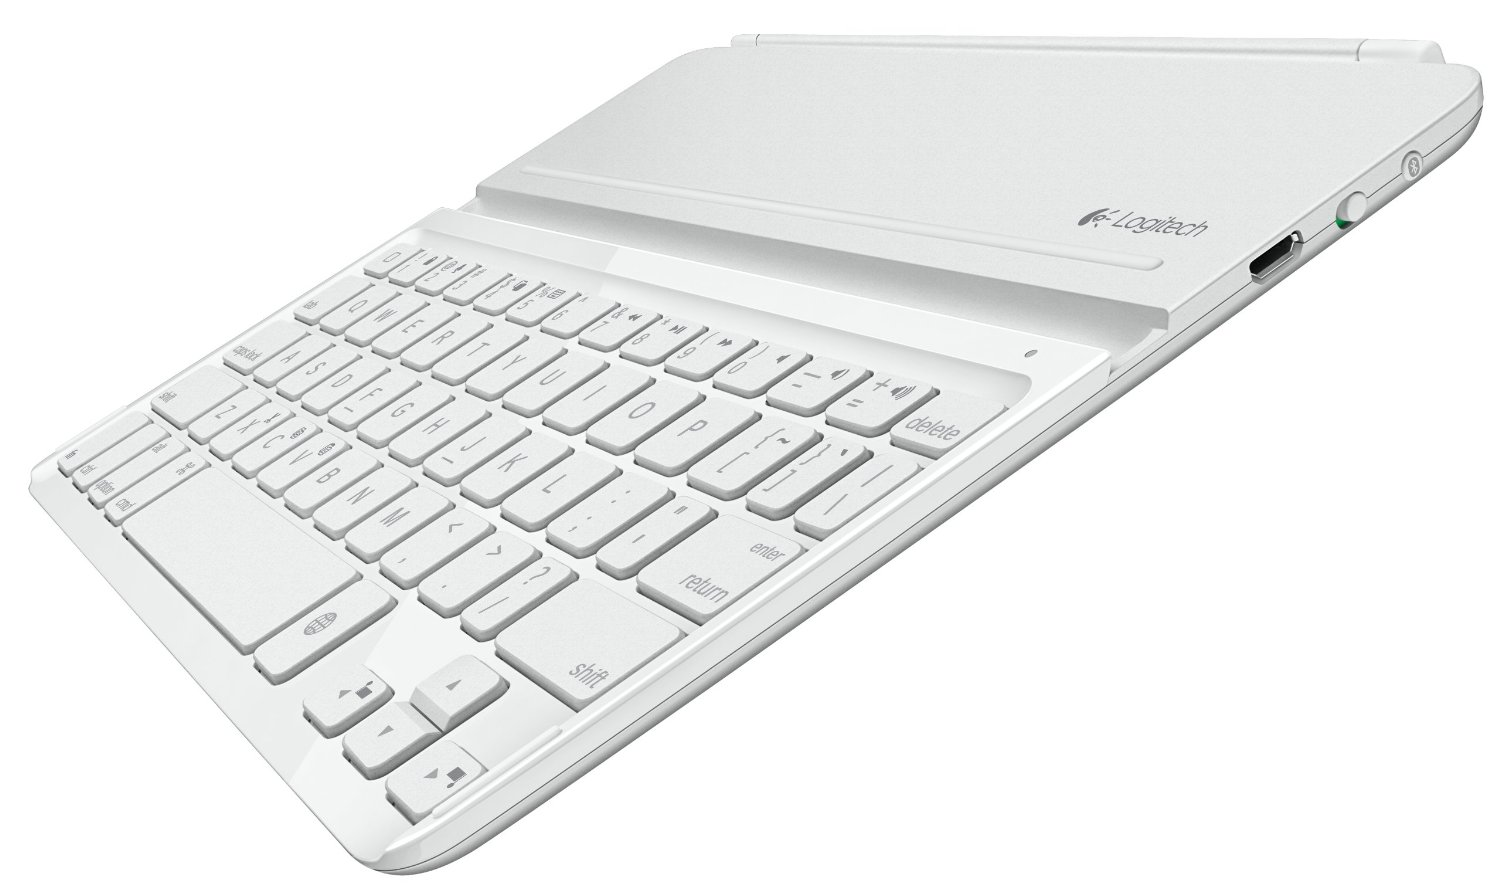 Logitech Ultrathin Keyboard Cover 2.0 - клавиатура-обложка для iPad Air (Silver)